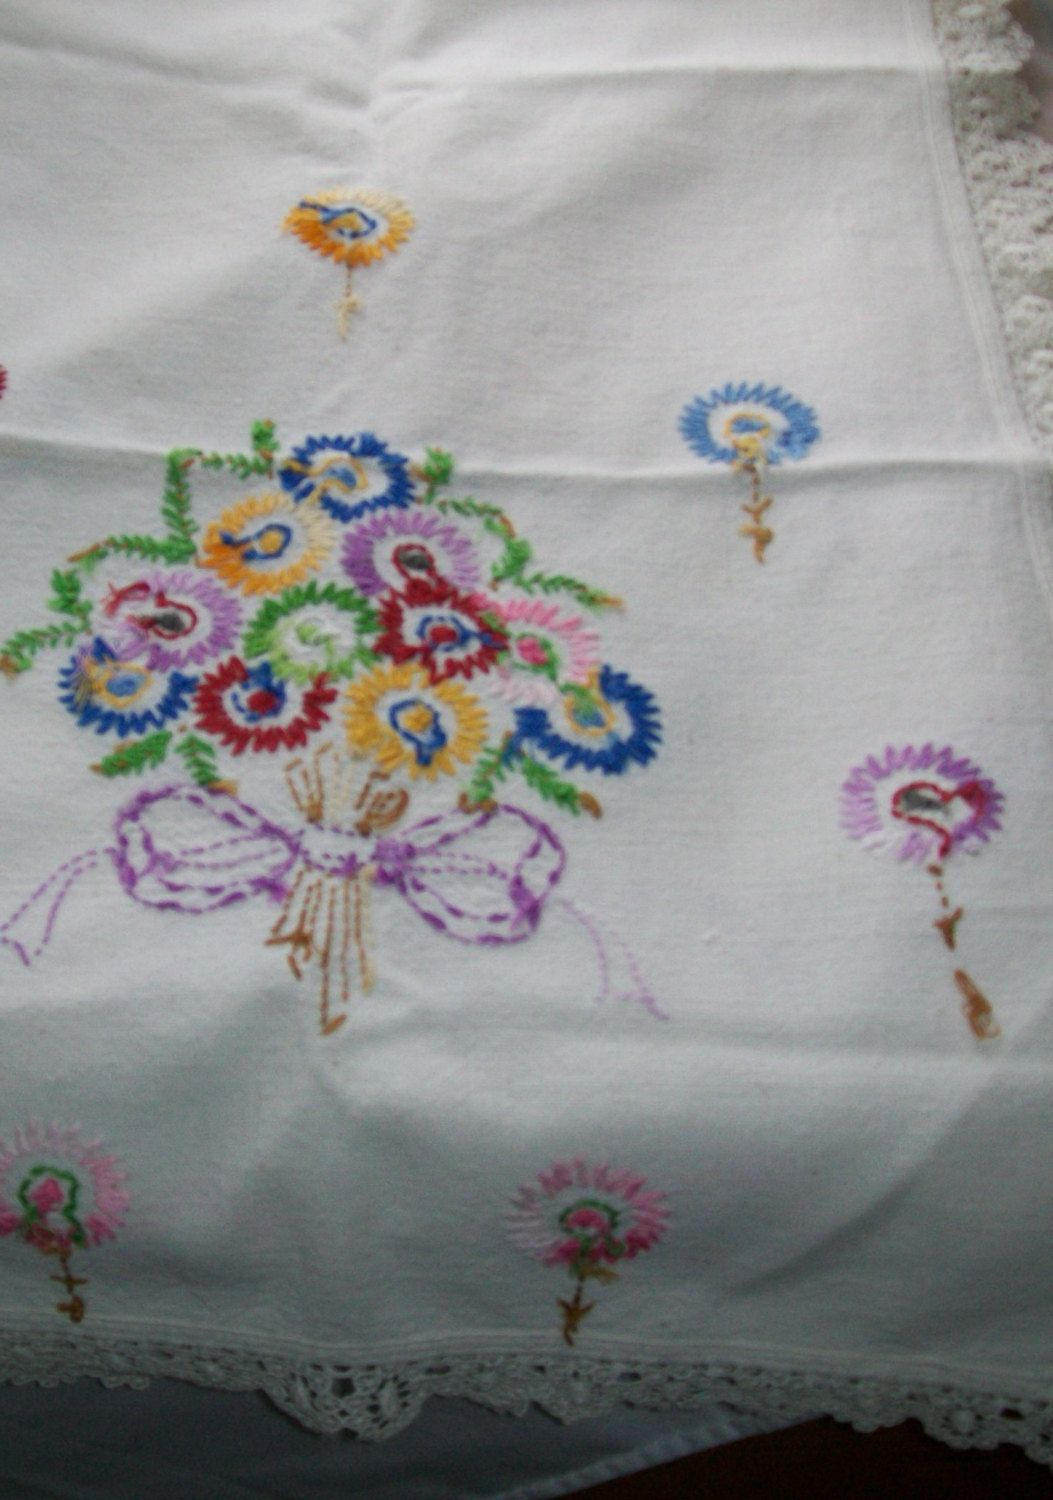 Vintage linen embroidered table dresser runner 18 x 48 flower design lace edging by NewtoUVintage on Etsy